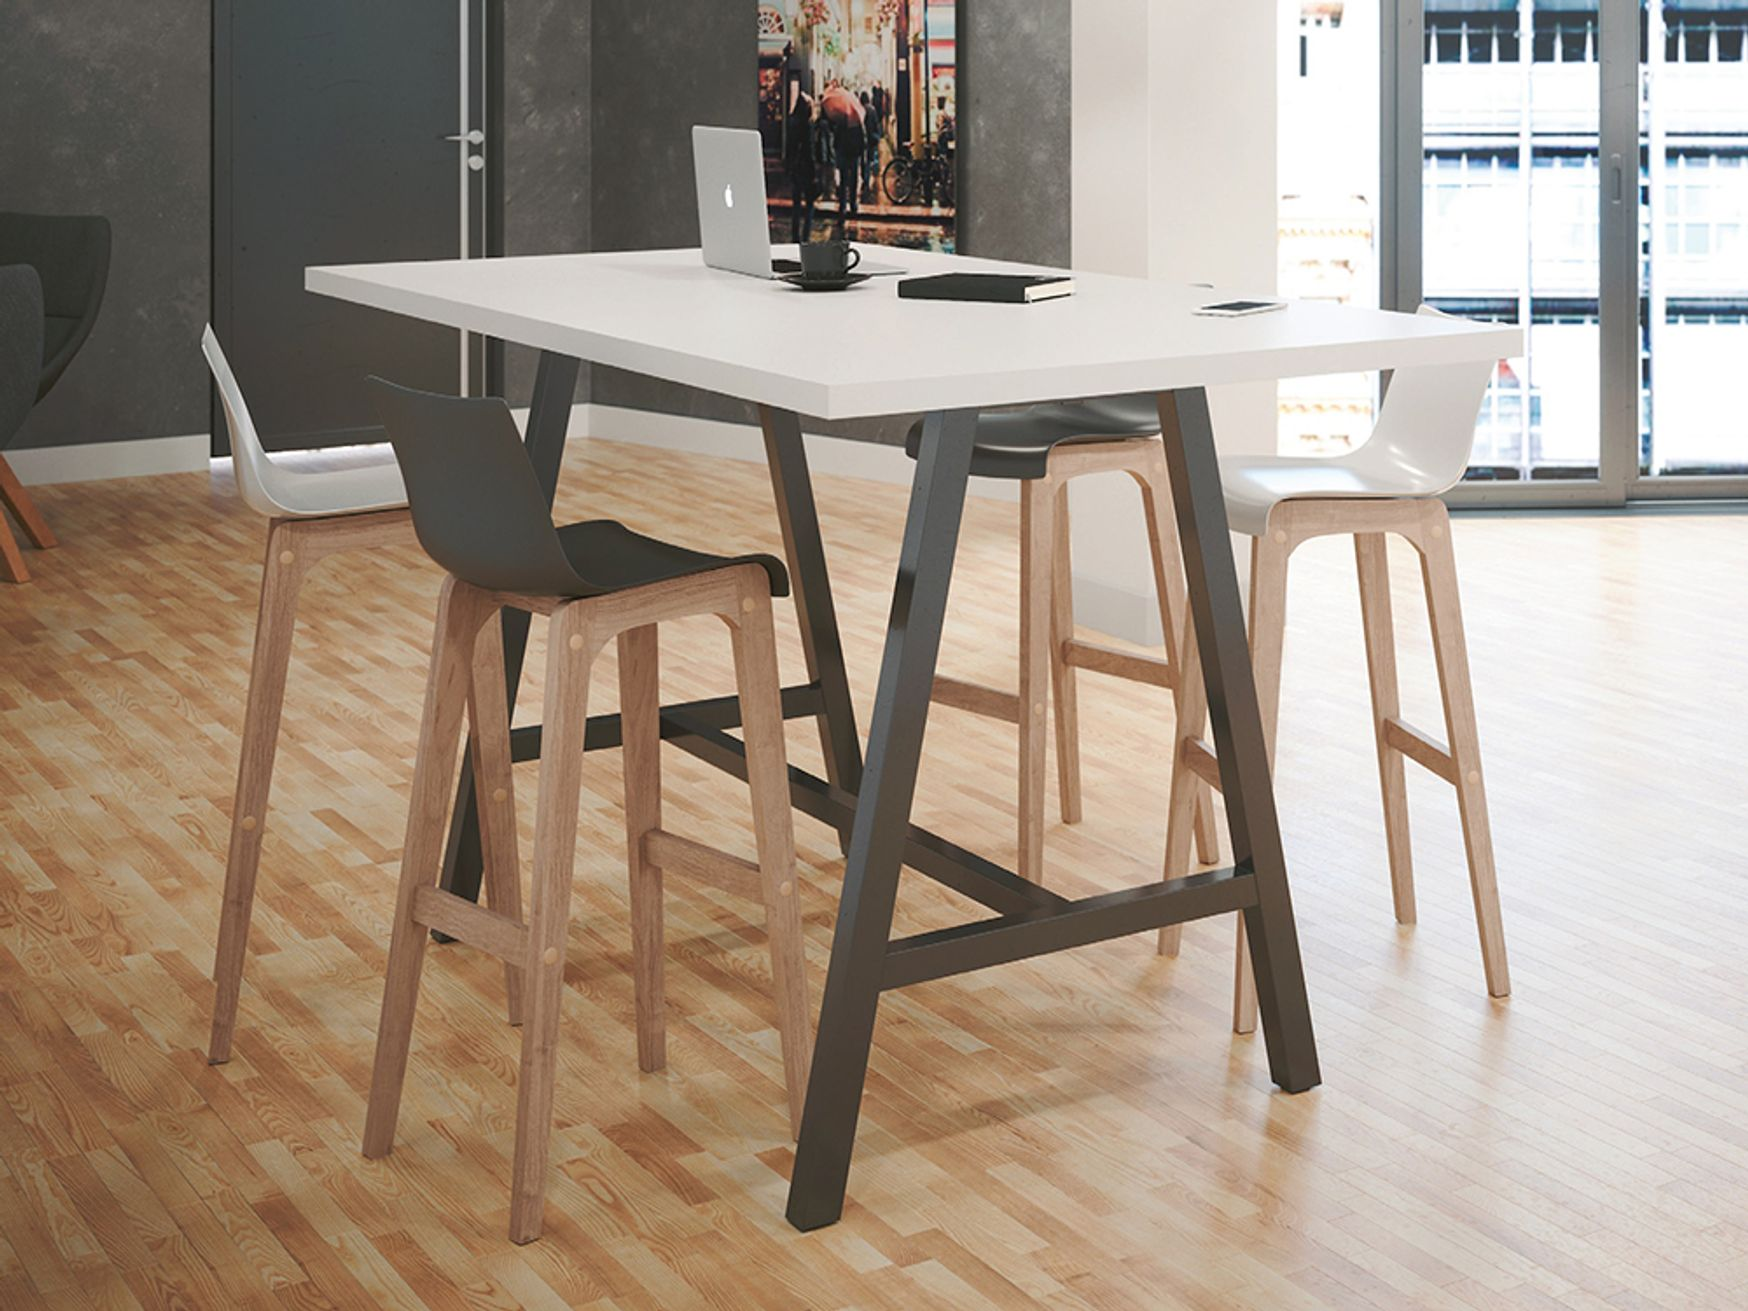 Brand new High Tables with Industrial Style Arch Leg